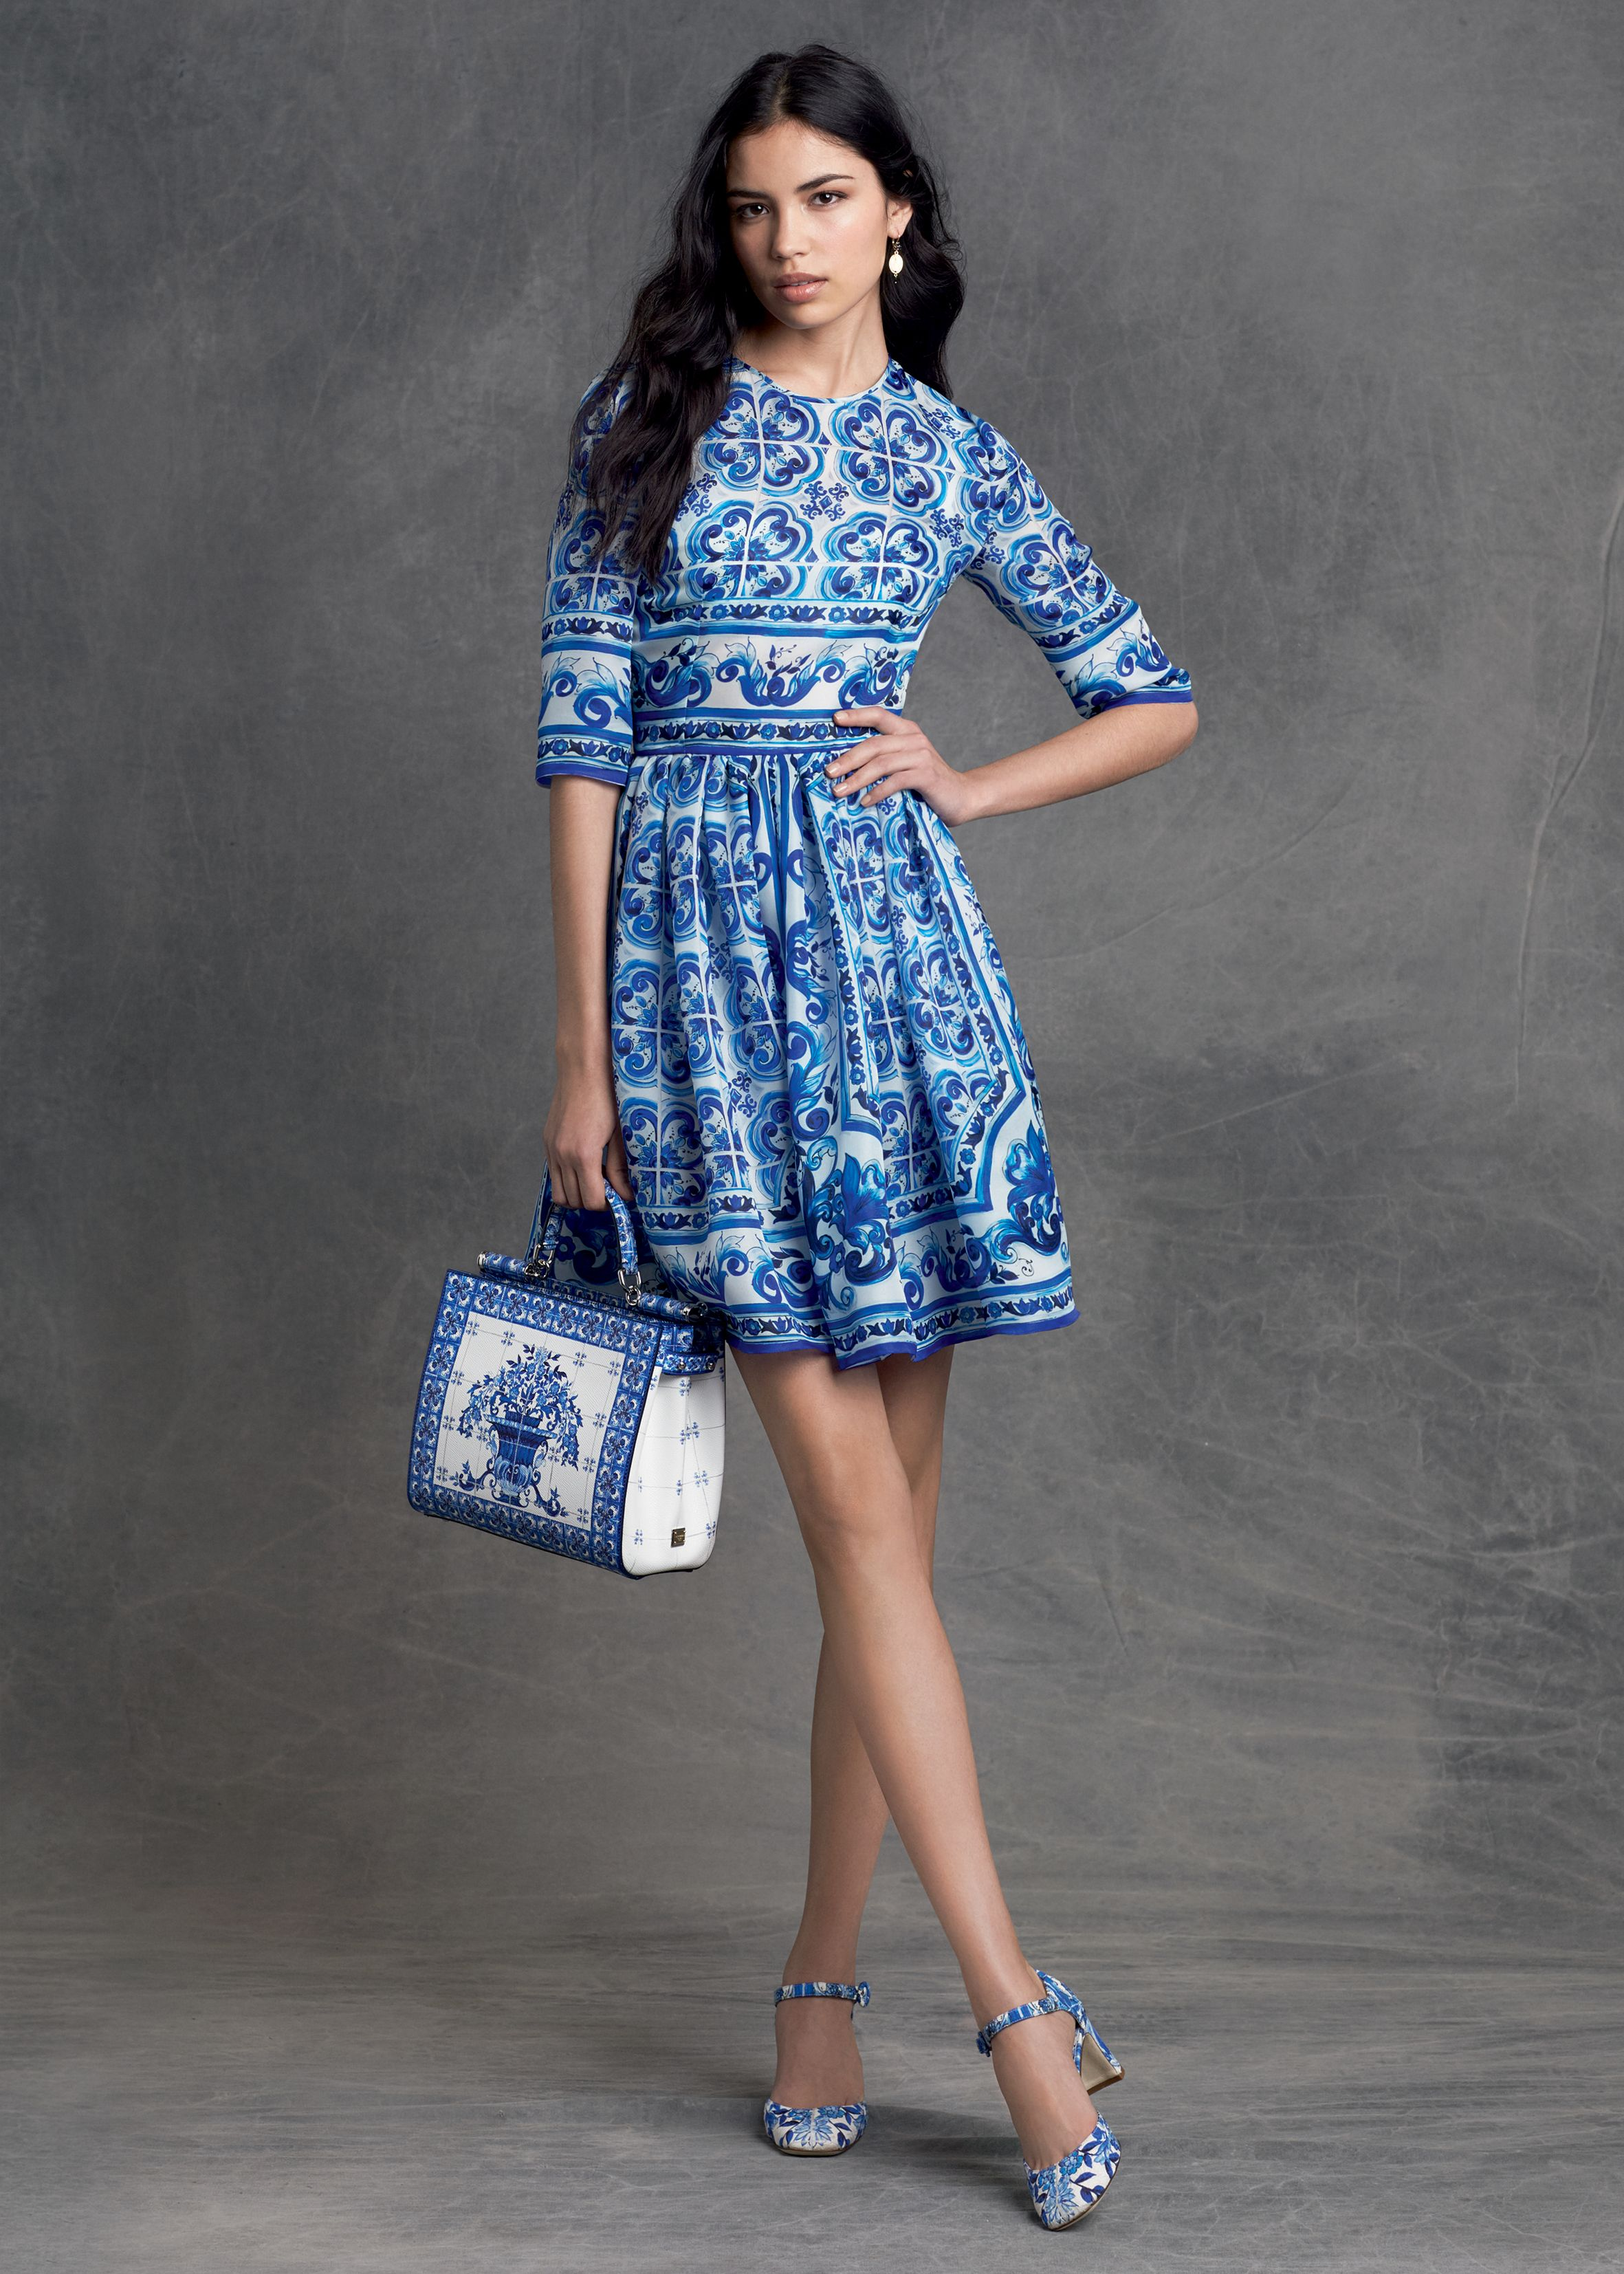 Dolce & Gabbana | Pre-Fall 2015 - LOVE the blue and white ...